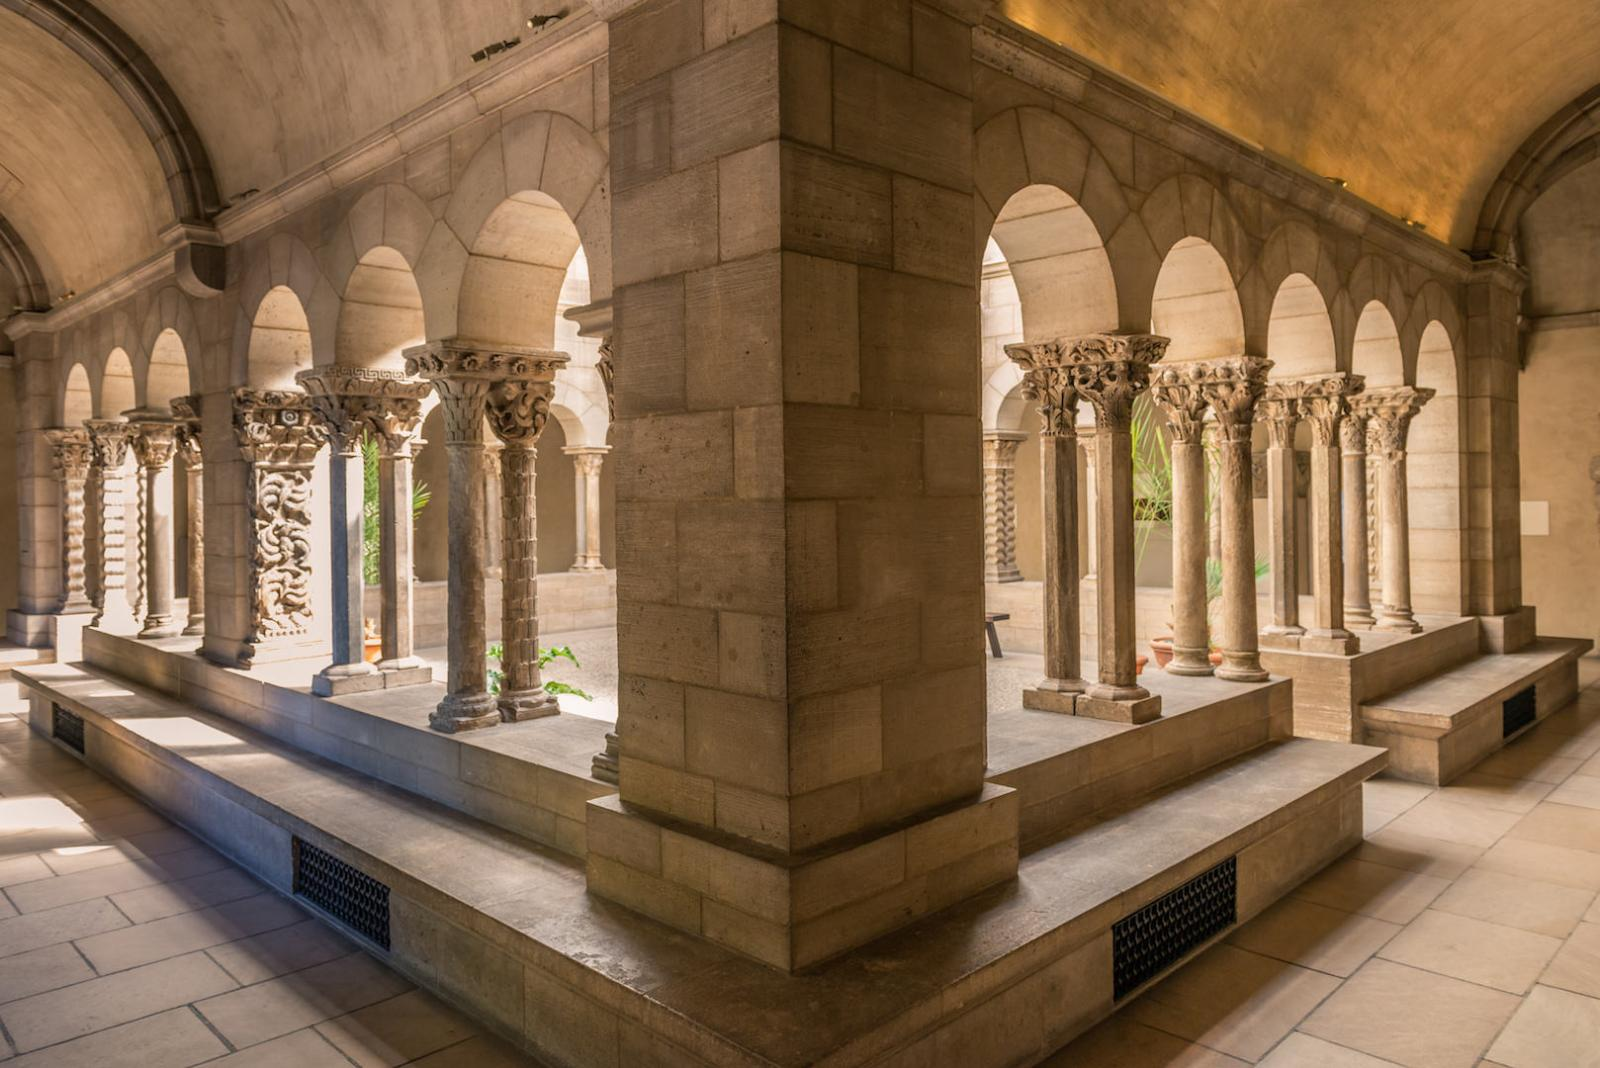 The Cloisters in New York